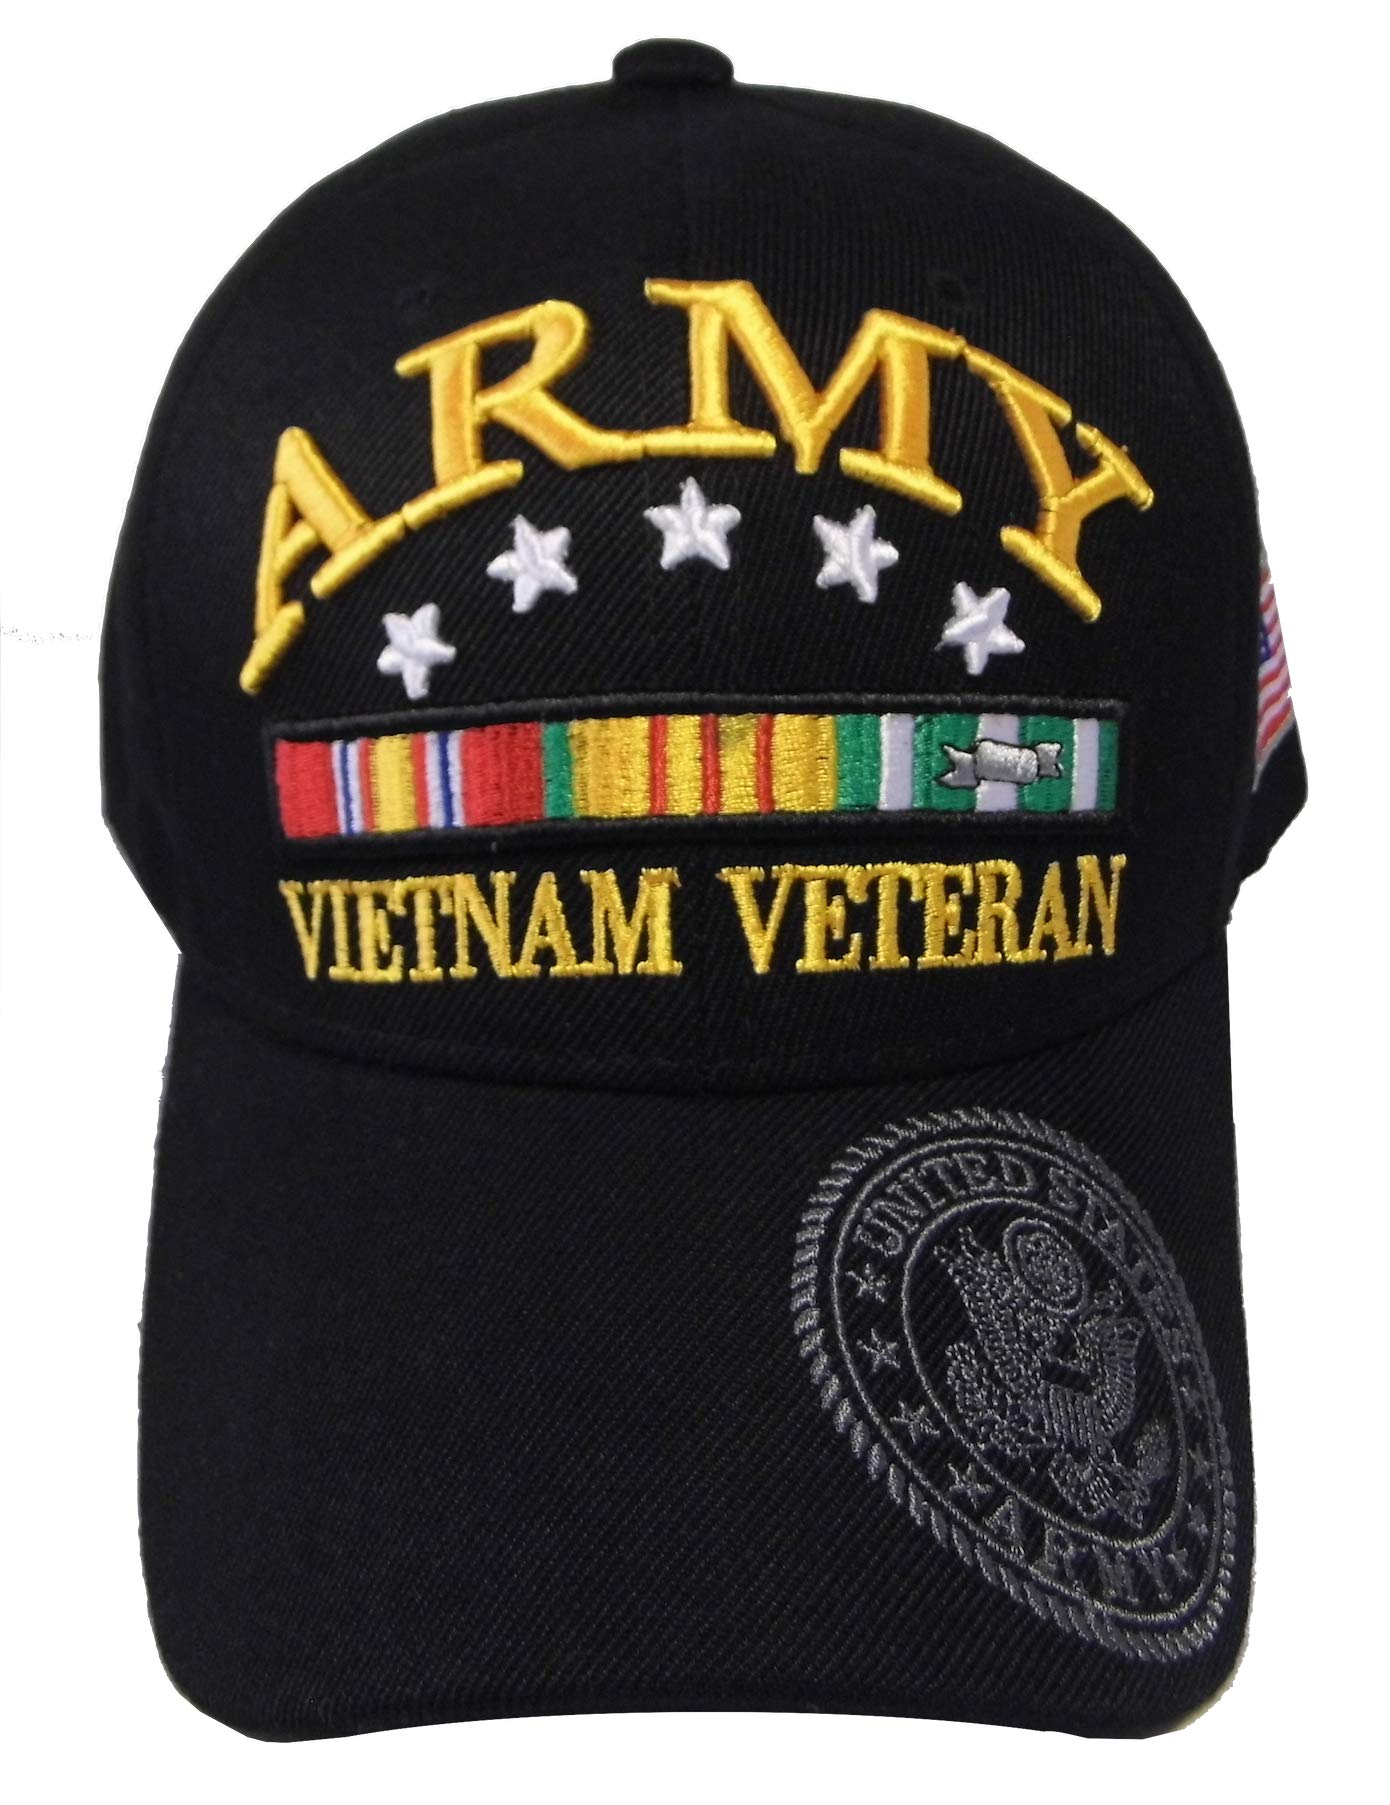 ARMY STRONG Men's U.S. Army Vietnam Veteran Hat Military Baseball Cap (One Size Fits All, Army 5 Star)